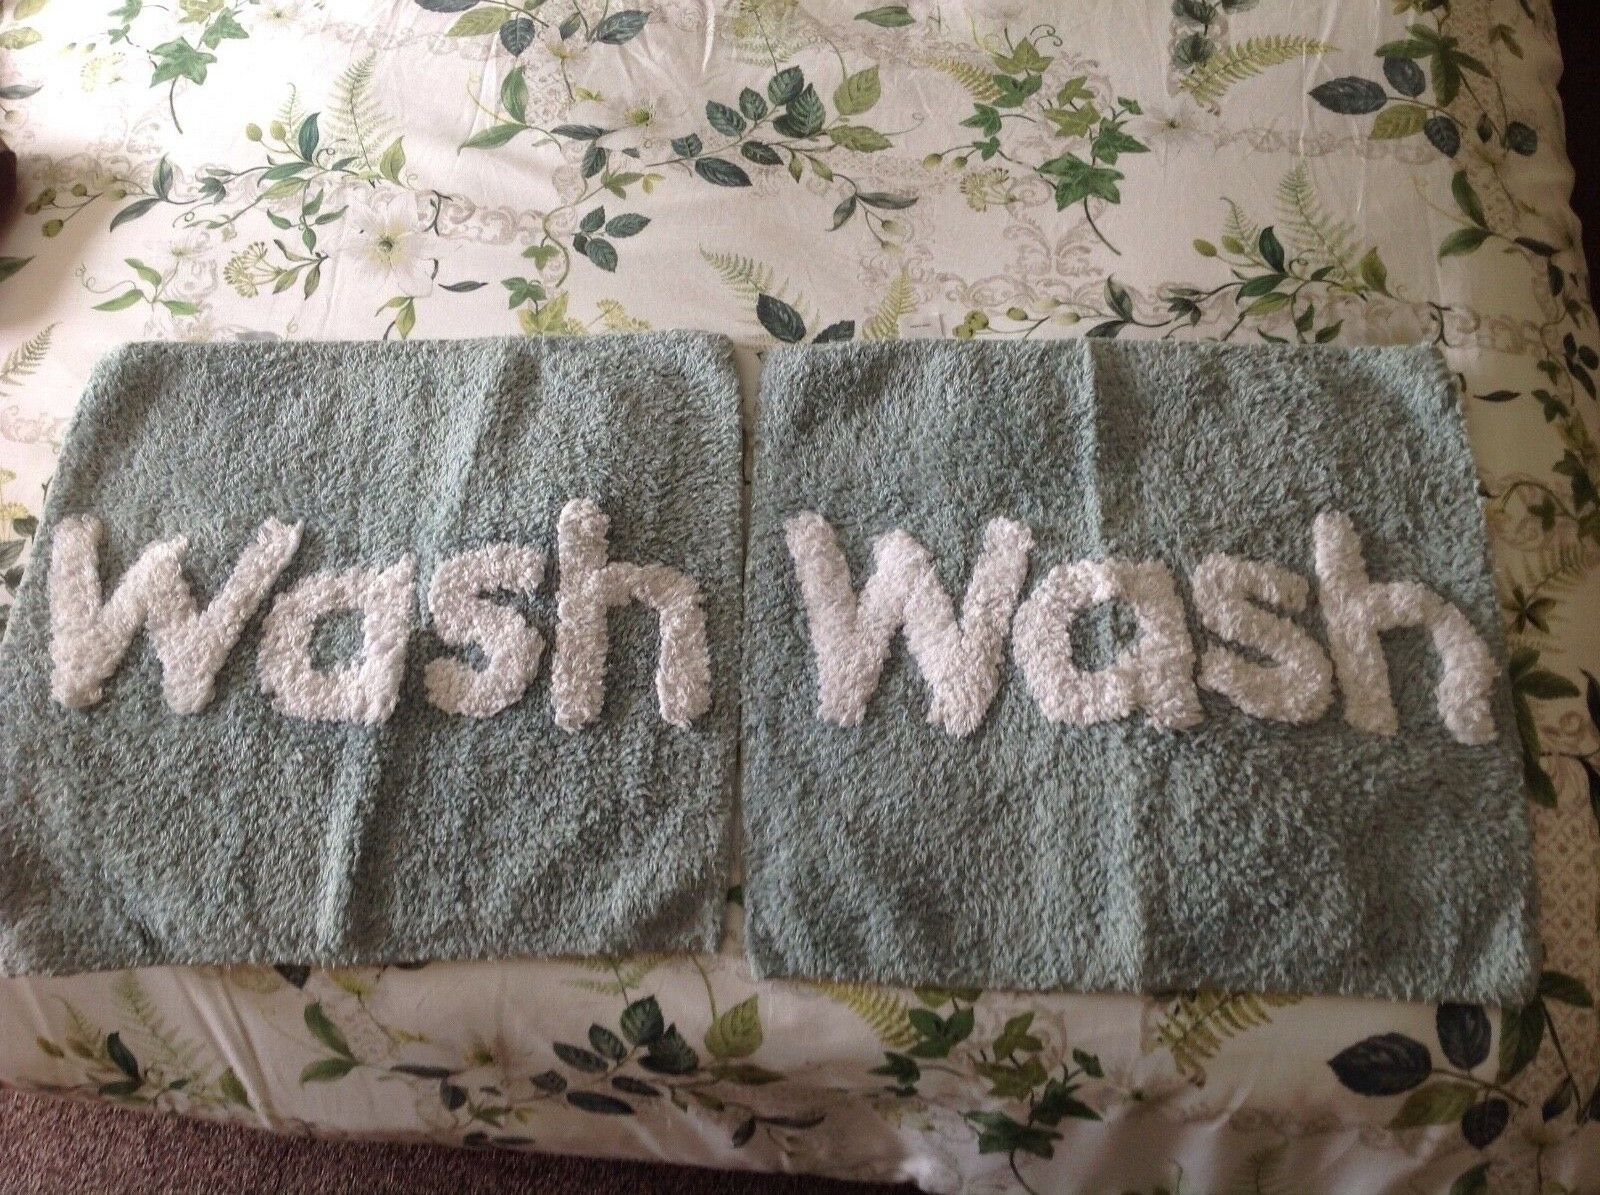 Dunhelm bath mats 2 Wash word on pale green 50 cm square bnwithout tags